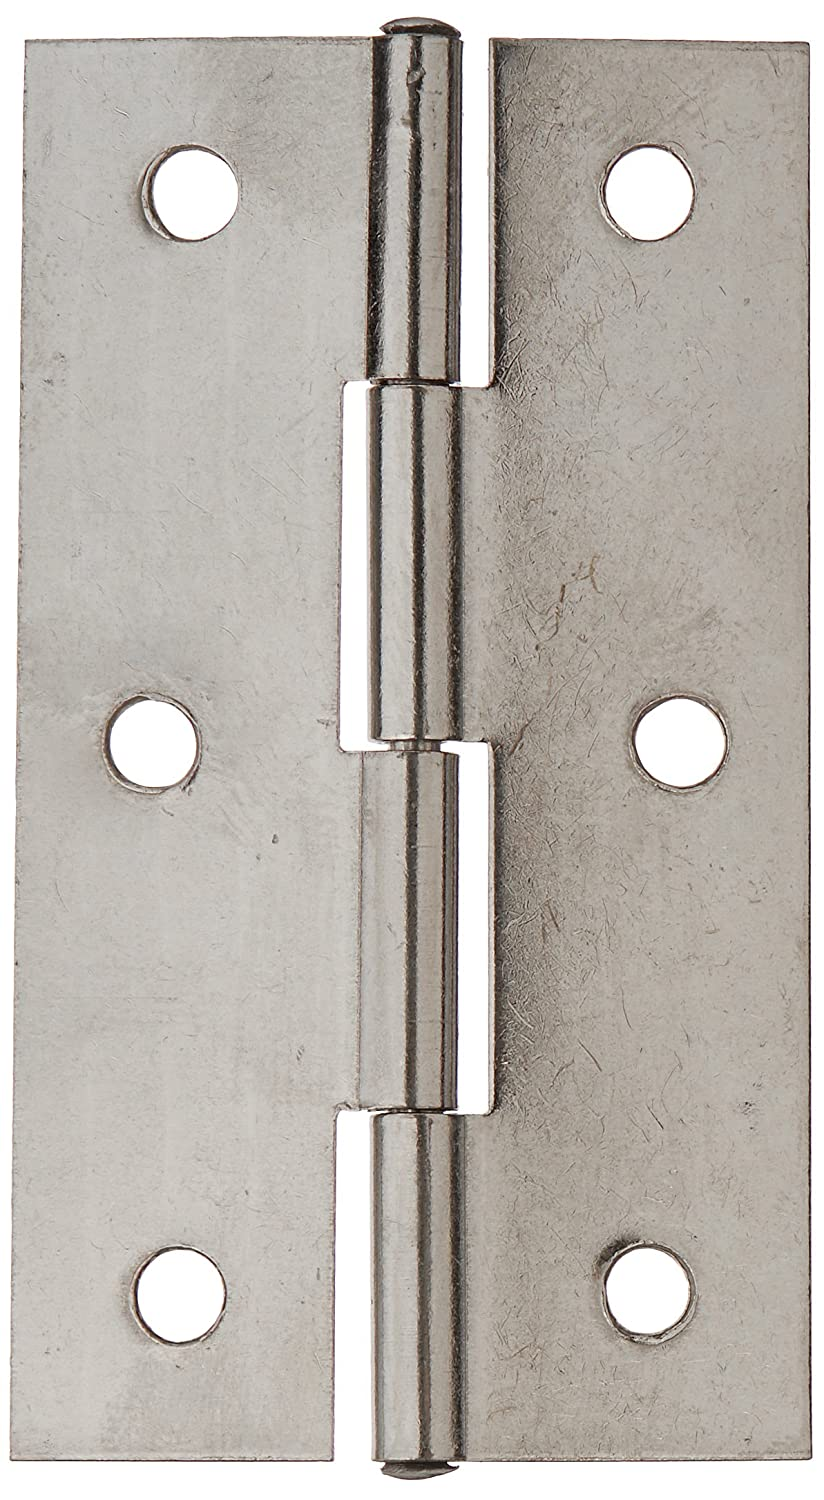 2.6 Polished Stainless Steel Home Door Butt Hinges Pair